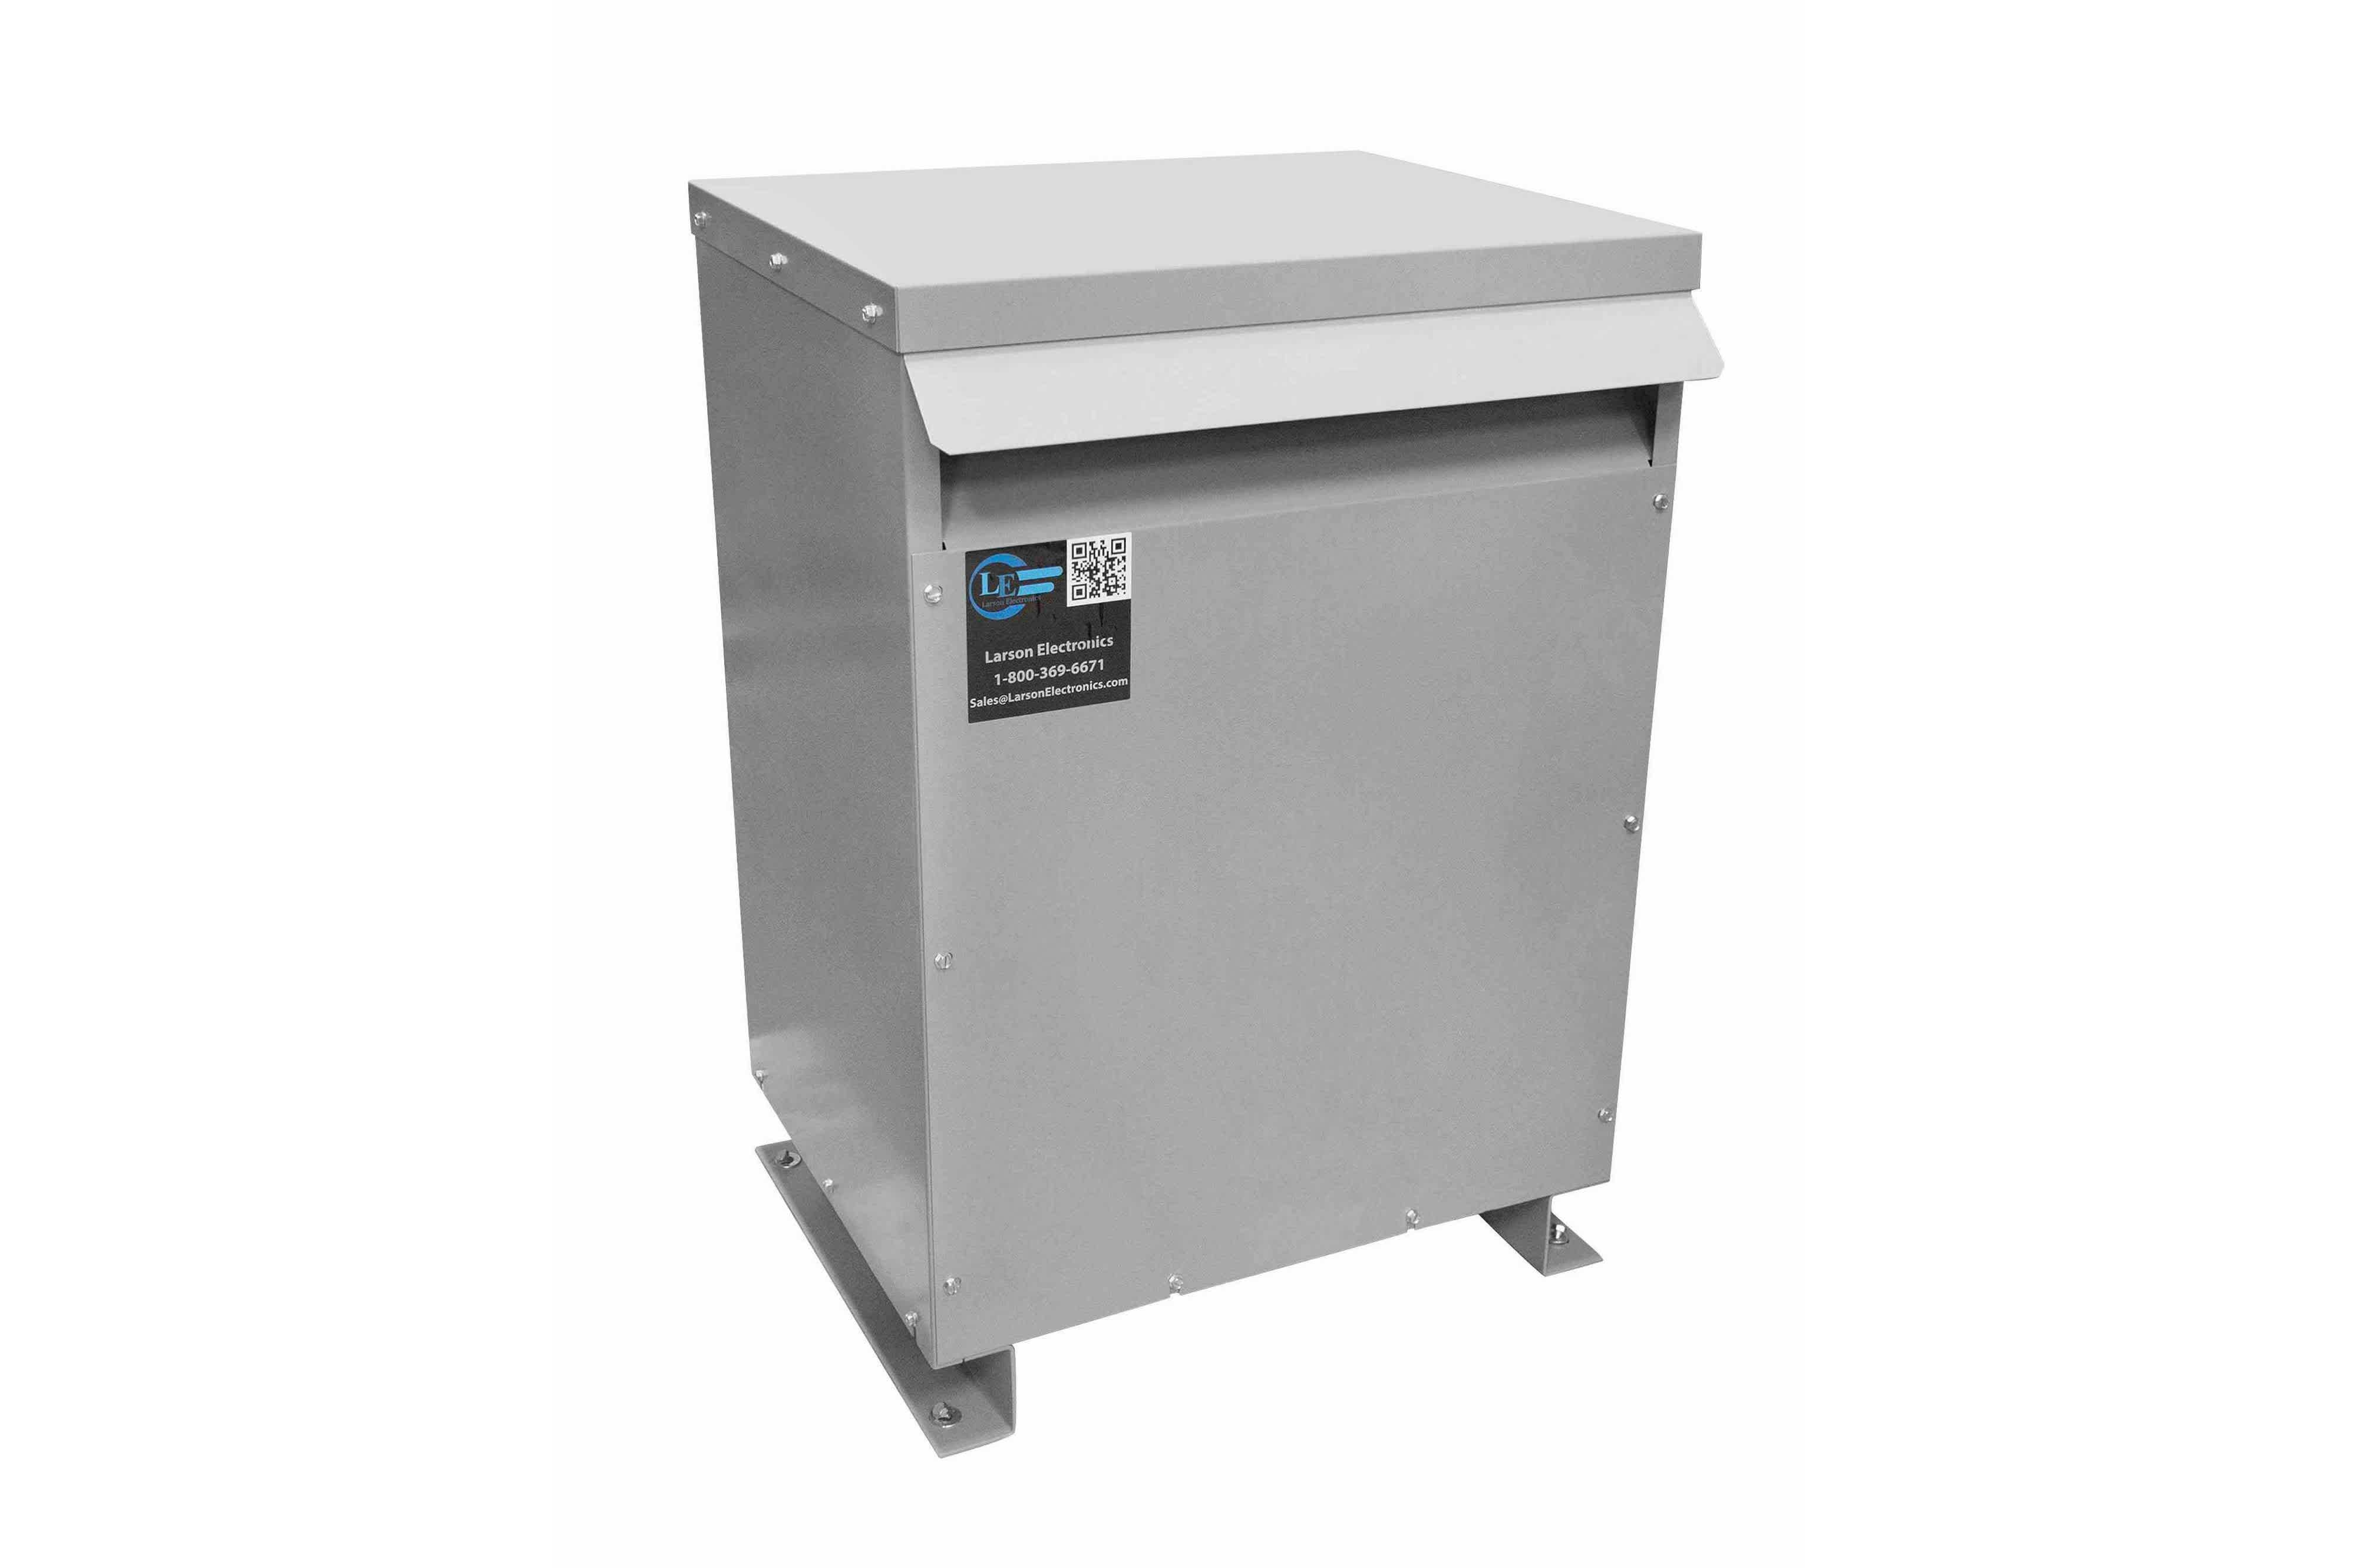 600 kVA 3PH Isolation Transformer, 575V Wye Primary, 415Y/240 Wye-N Secondary, N3R, Ventilated, 60 Hz